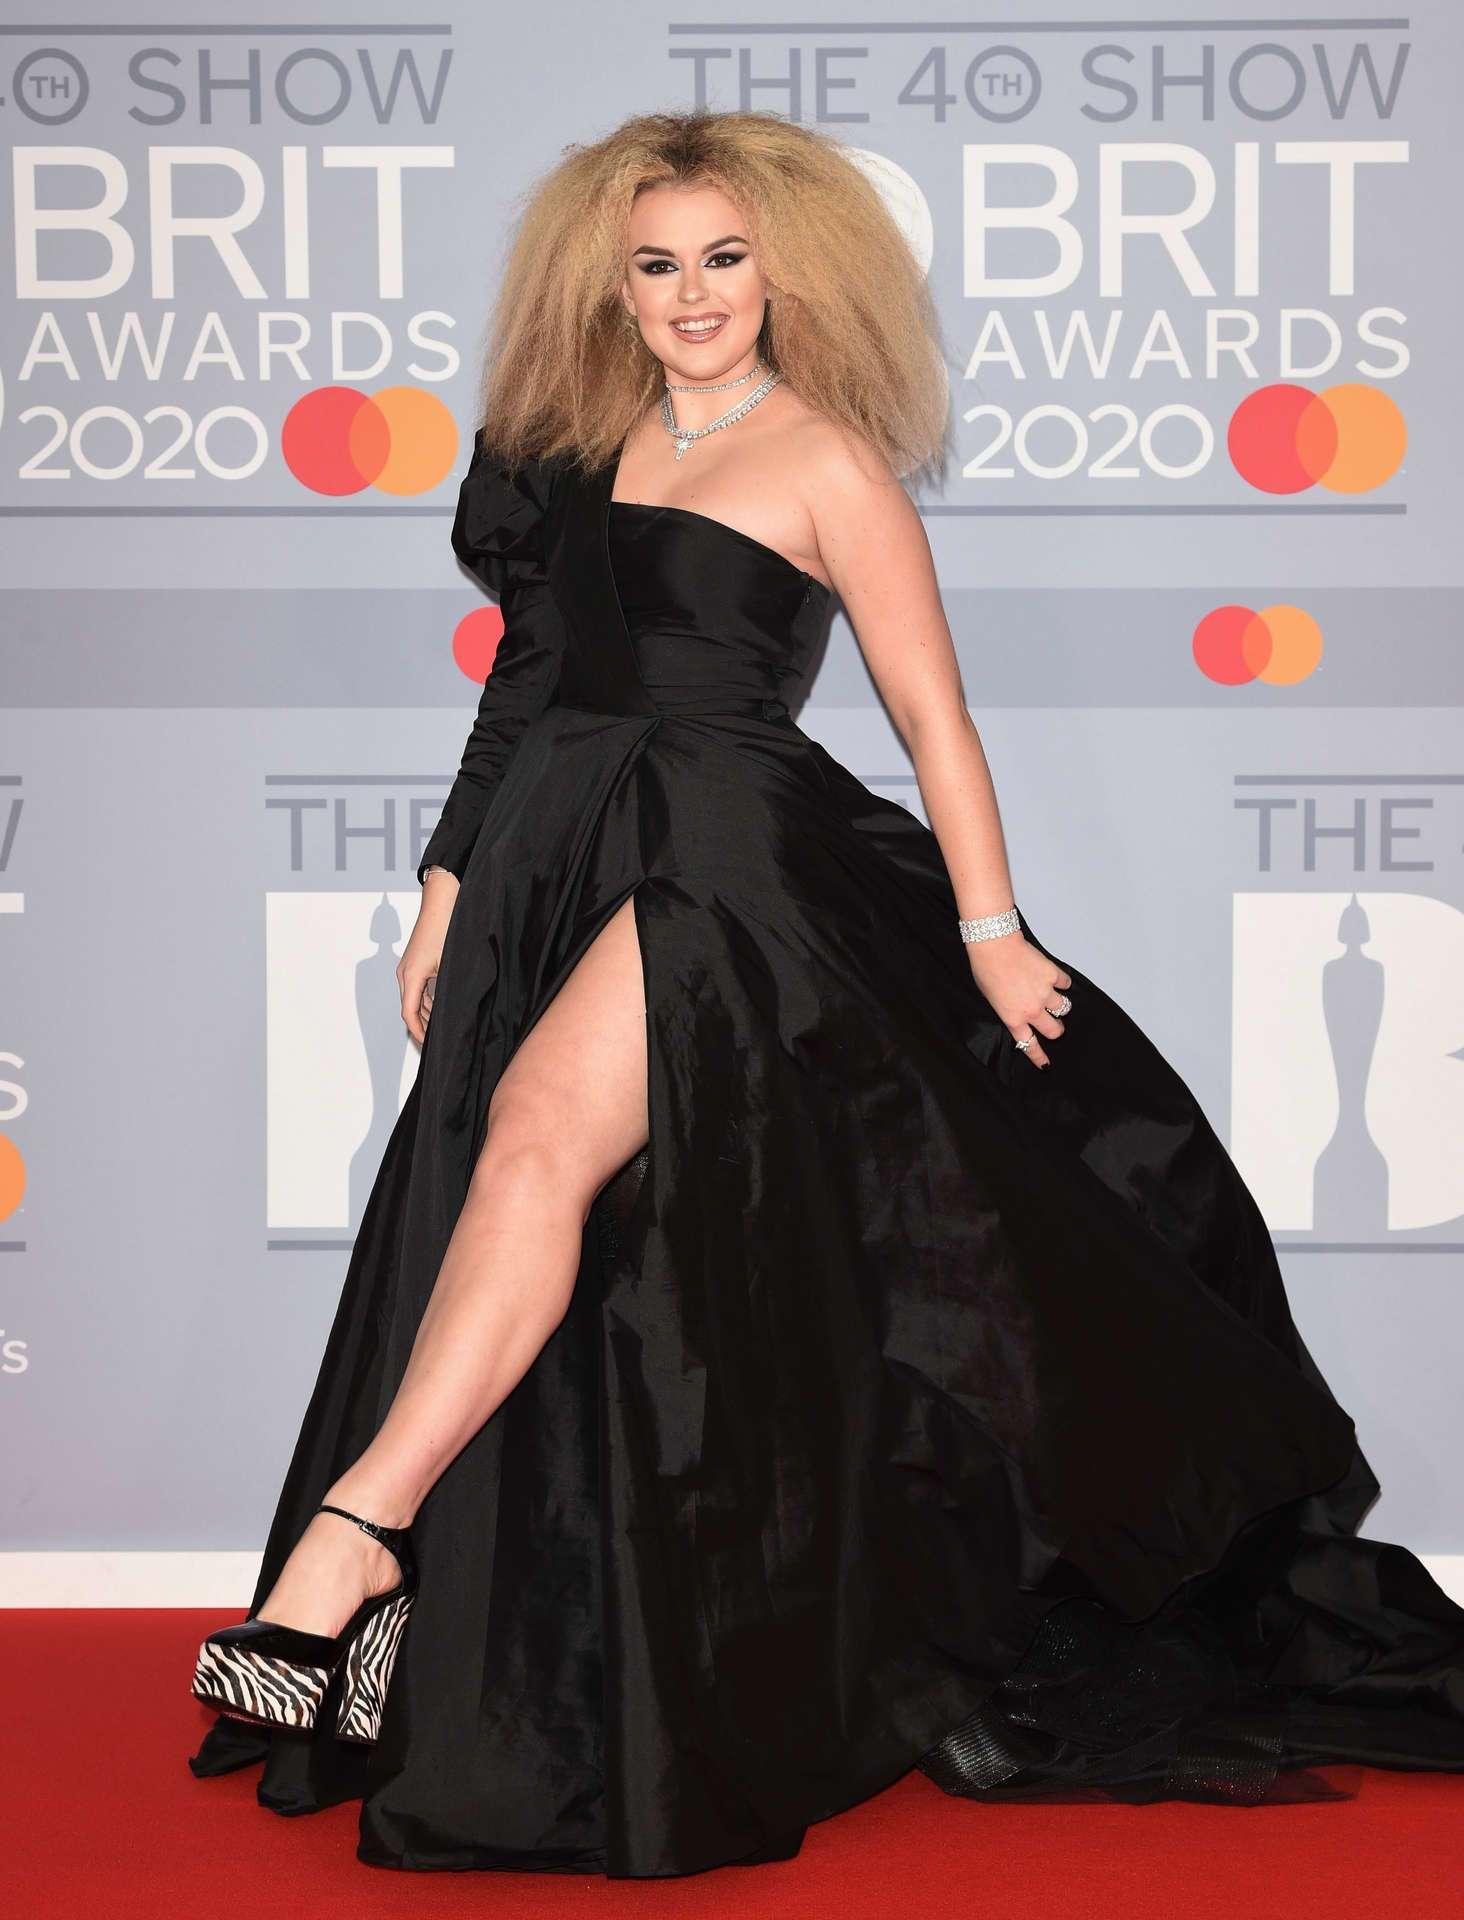 Tallia Storm at The BRIT Awards 2020 in London